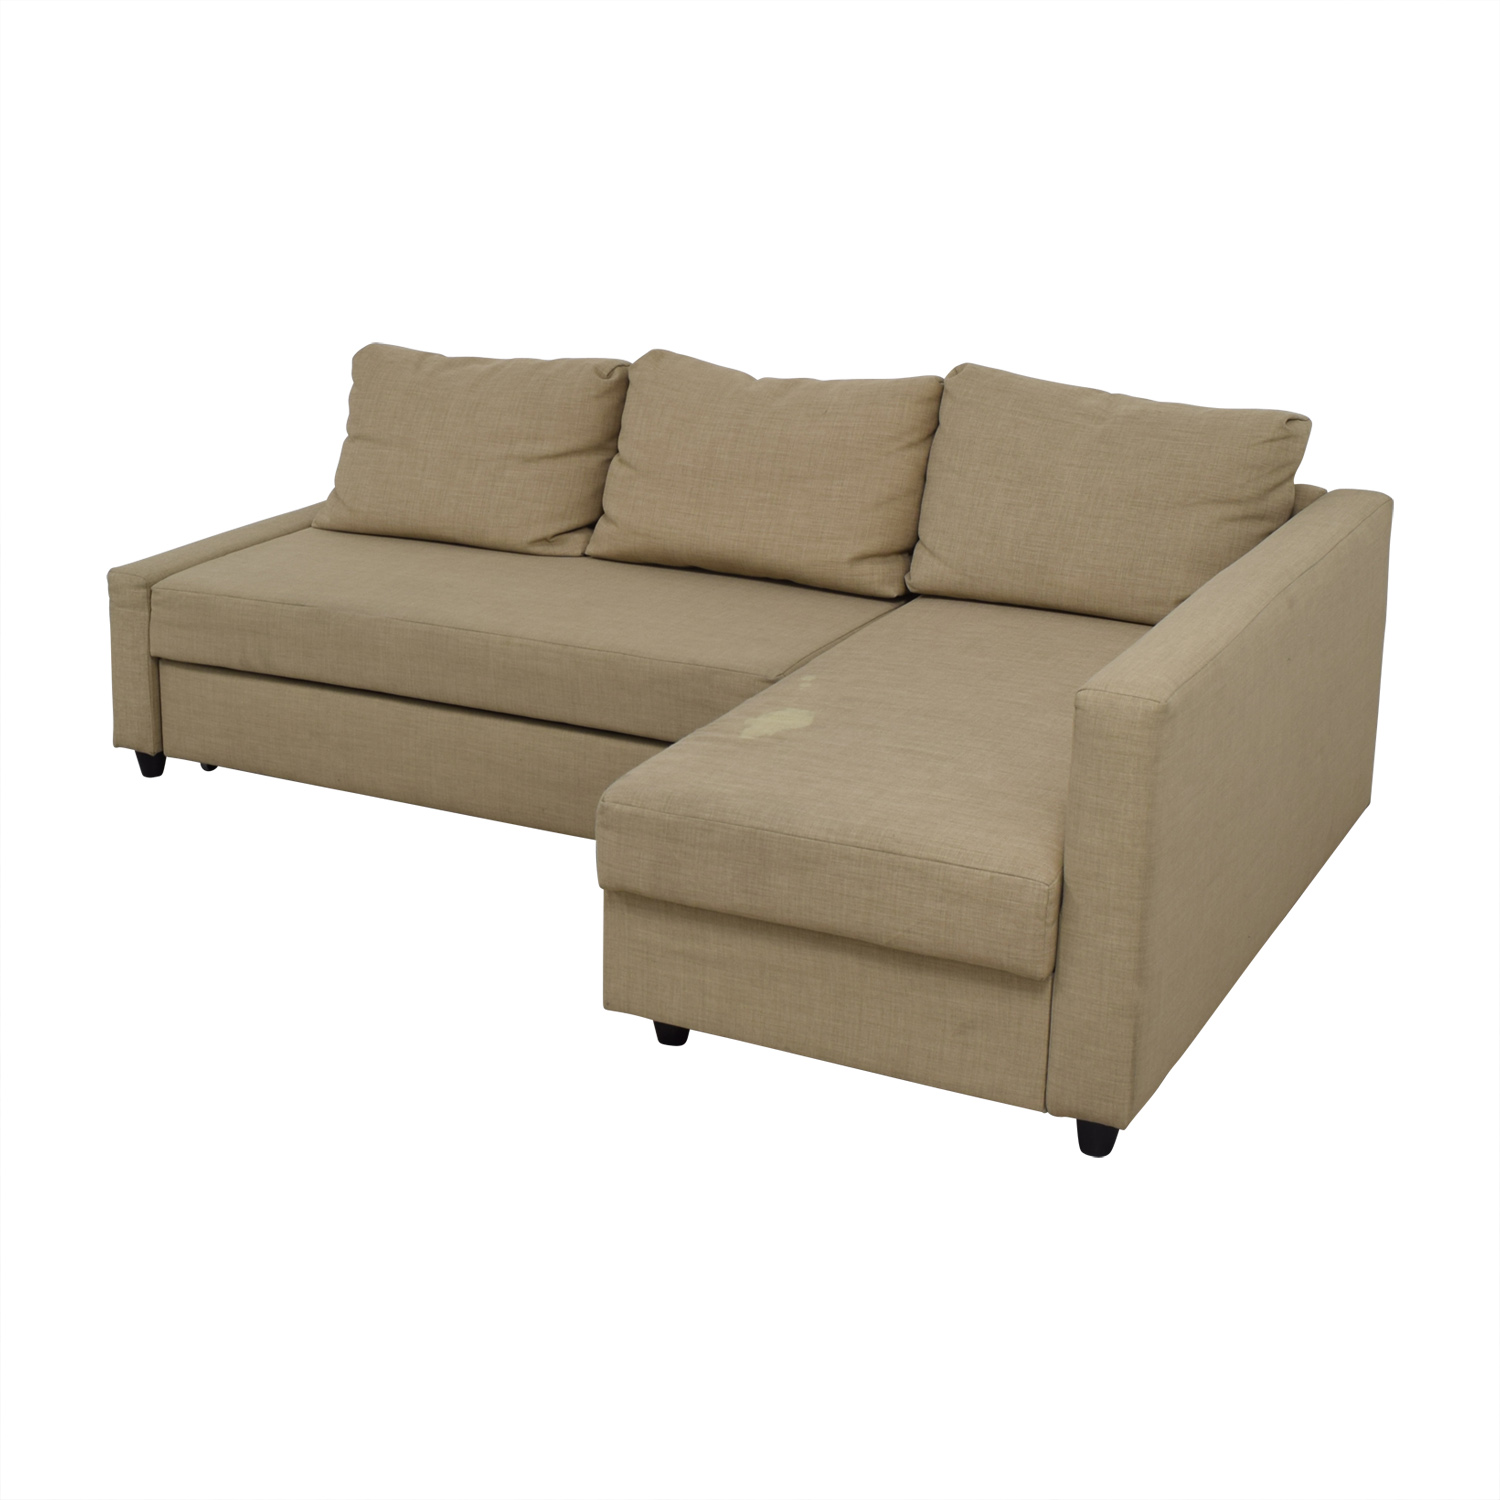 74 Off Ikea Ikea Friheten Tan Sleeper Sectional Sofas